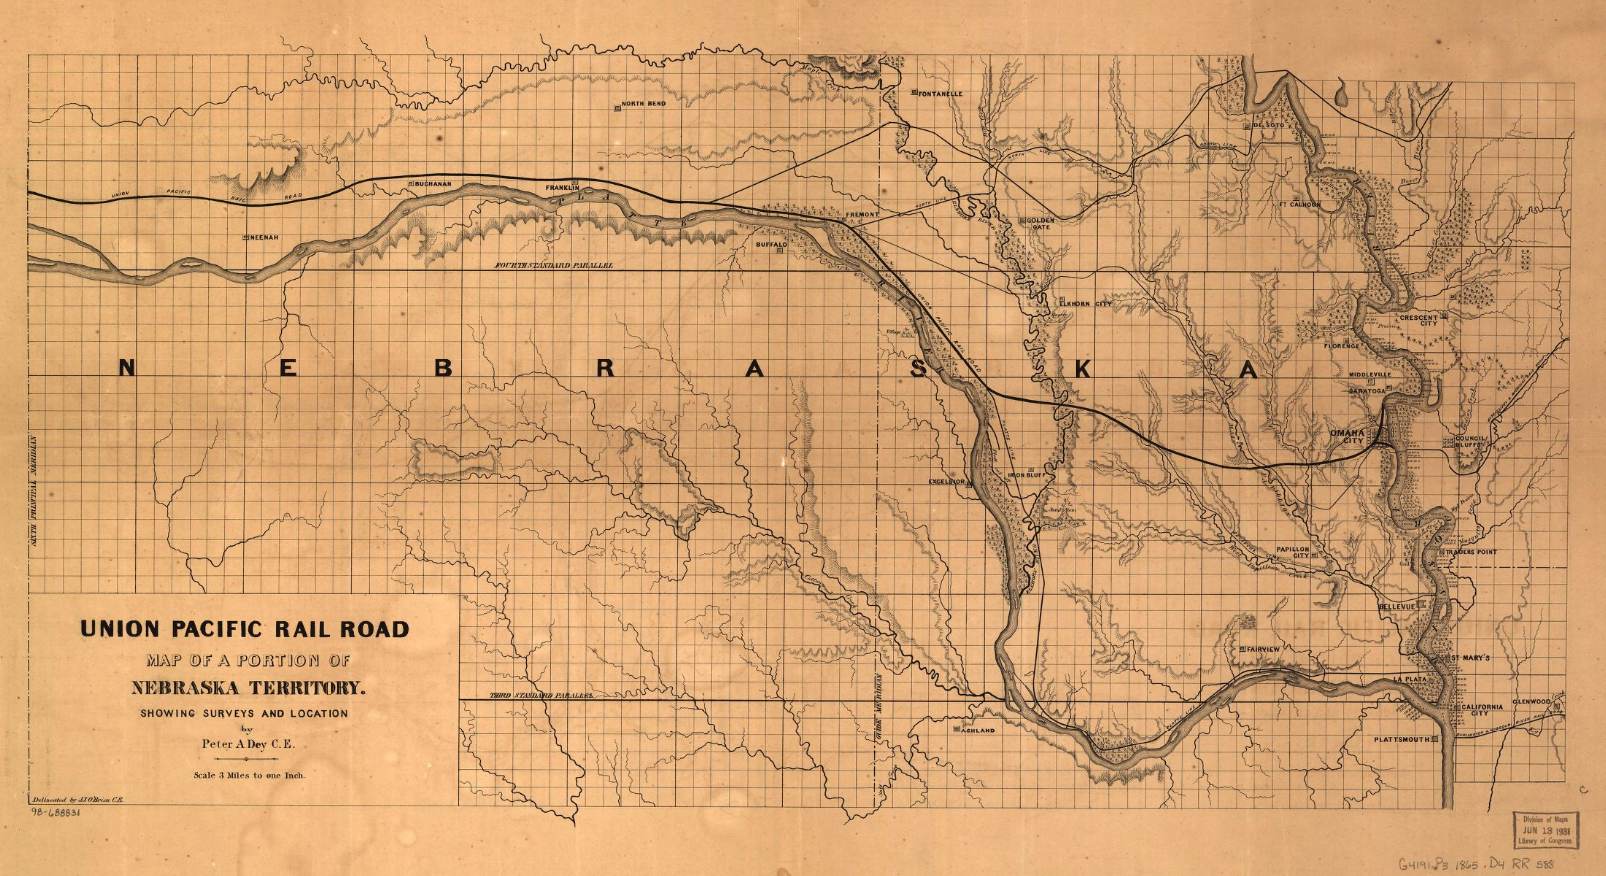 This Is An Union Pacific Railroad Map Of Nebraska Territory - Map of nebraska towns